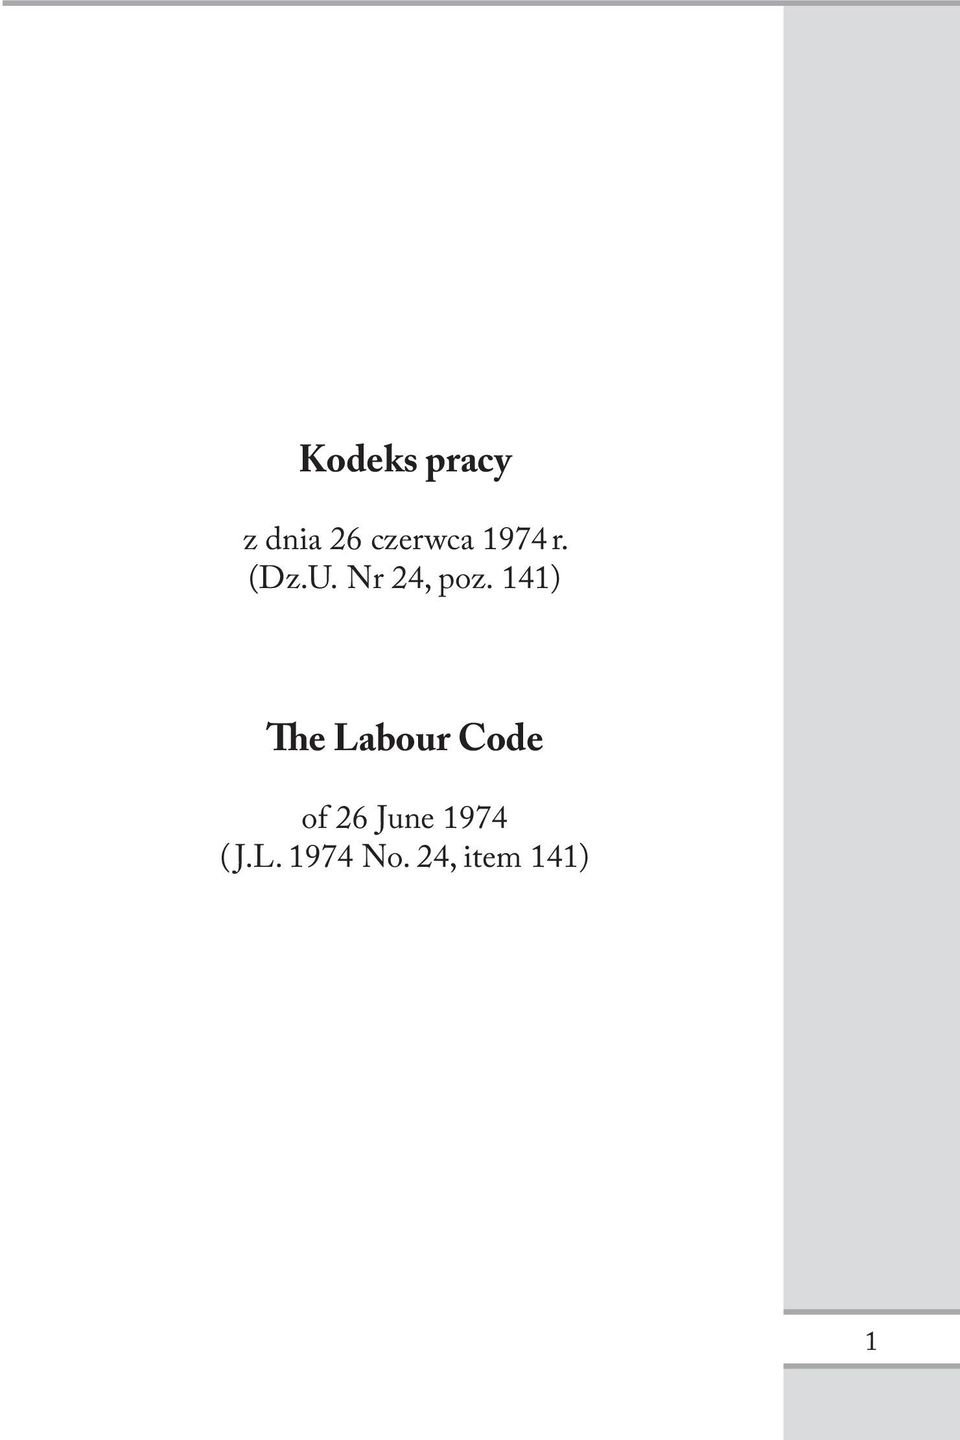 141) The Labour Code of 26 June